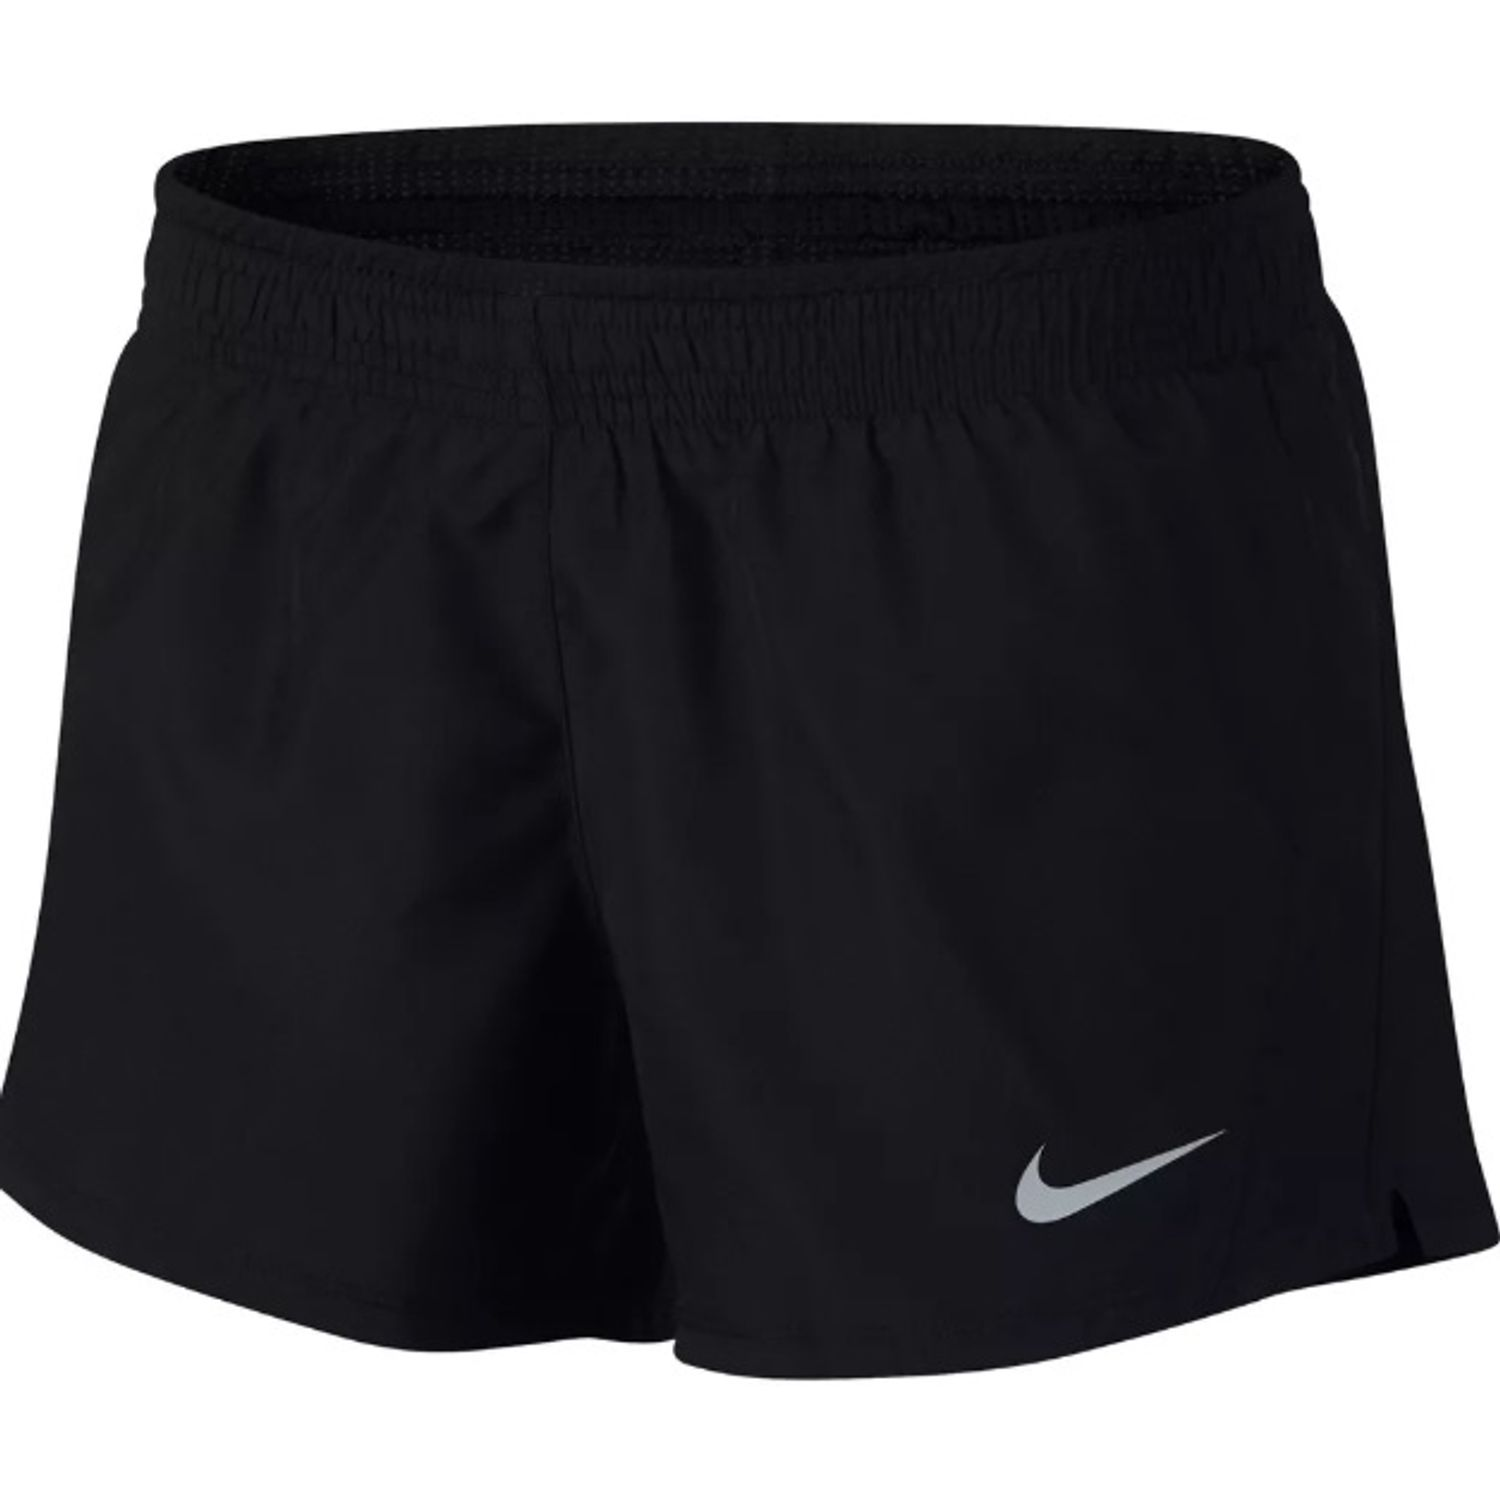 4f7a822050 SHORT NIKE DRY 10K MUJER - sporting